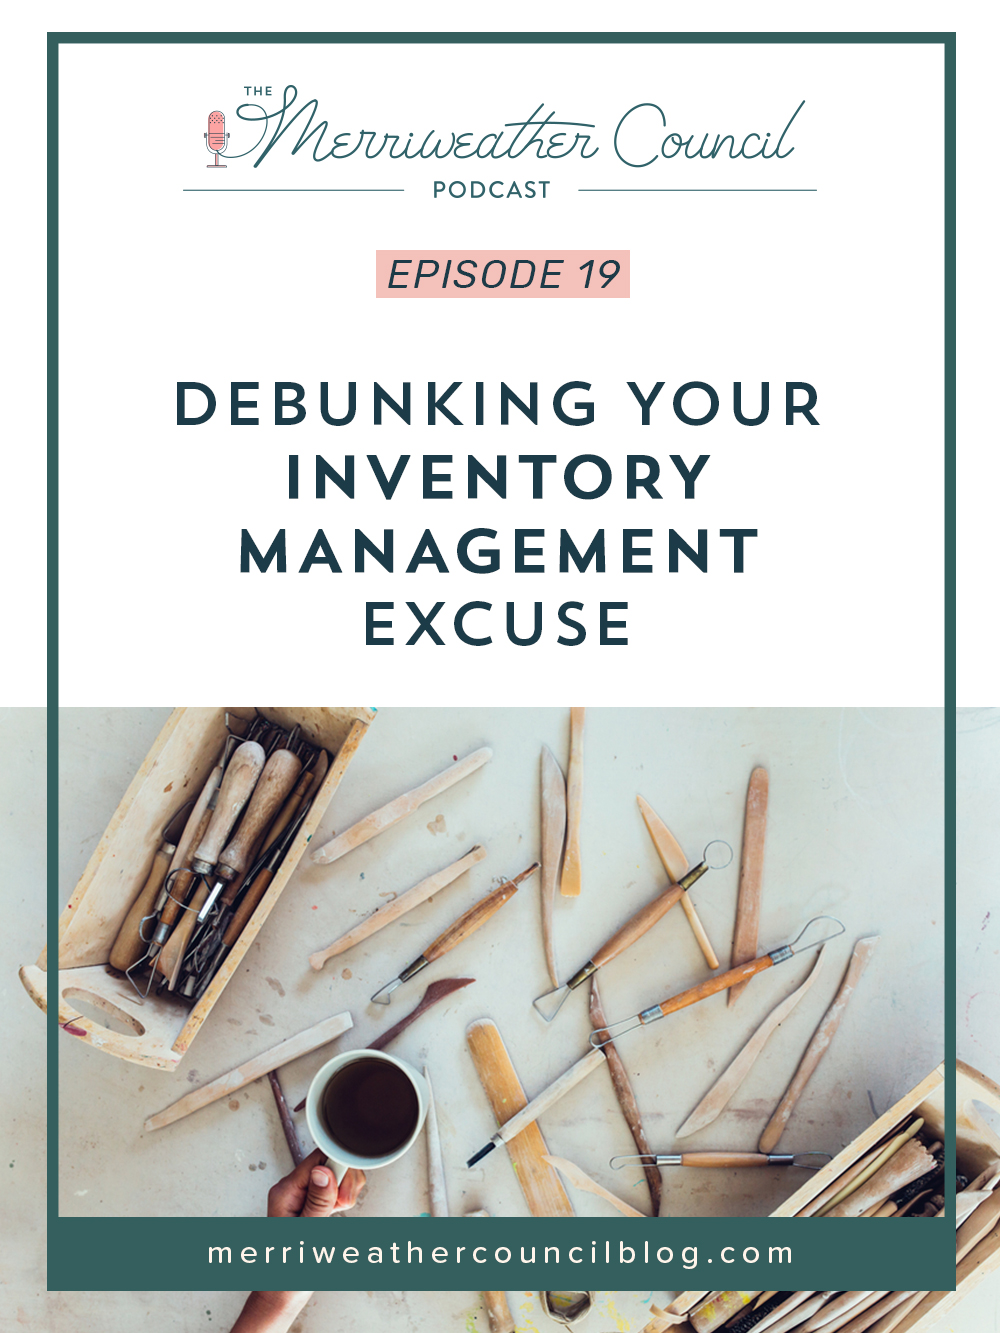 Episode 019: Debunking Your Inventory Management Excuse | the merriweather council podcast